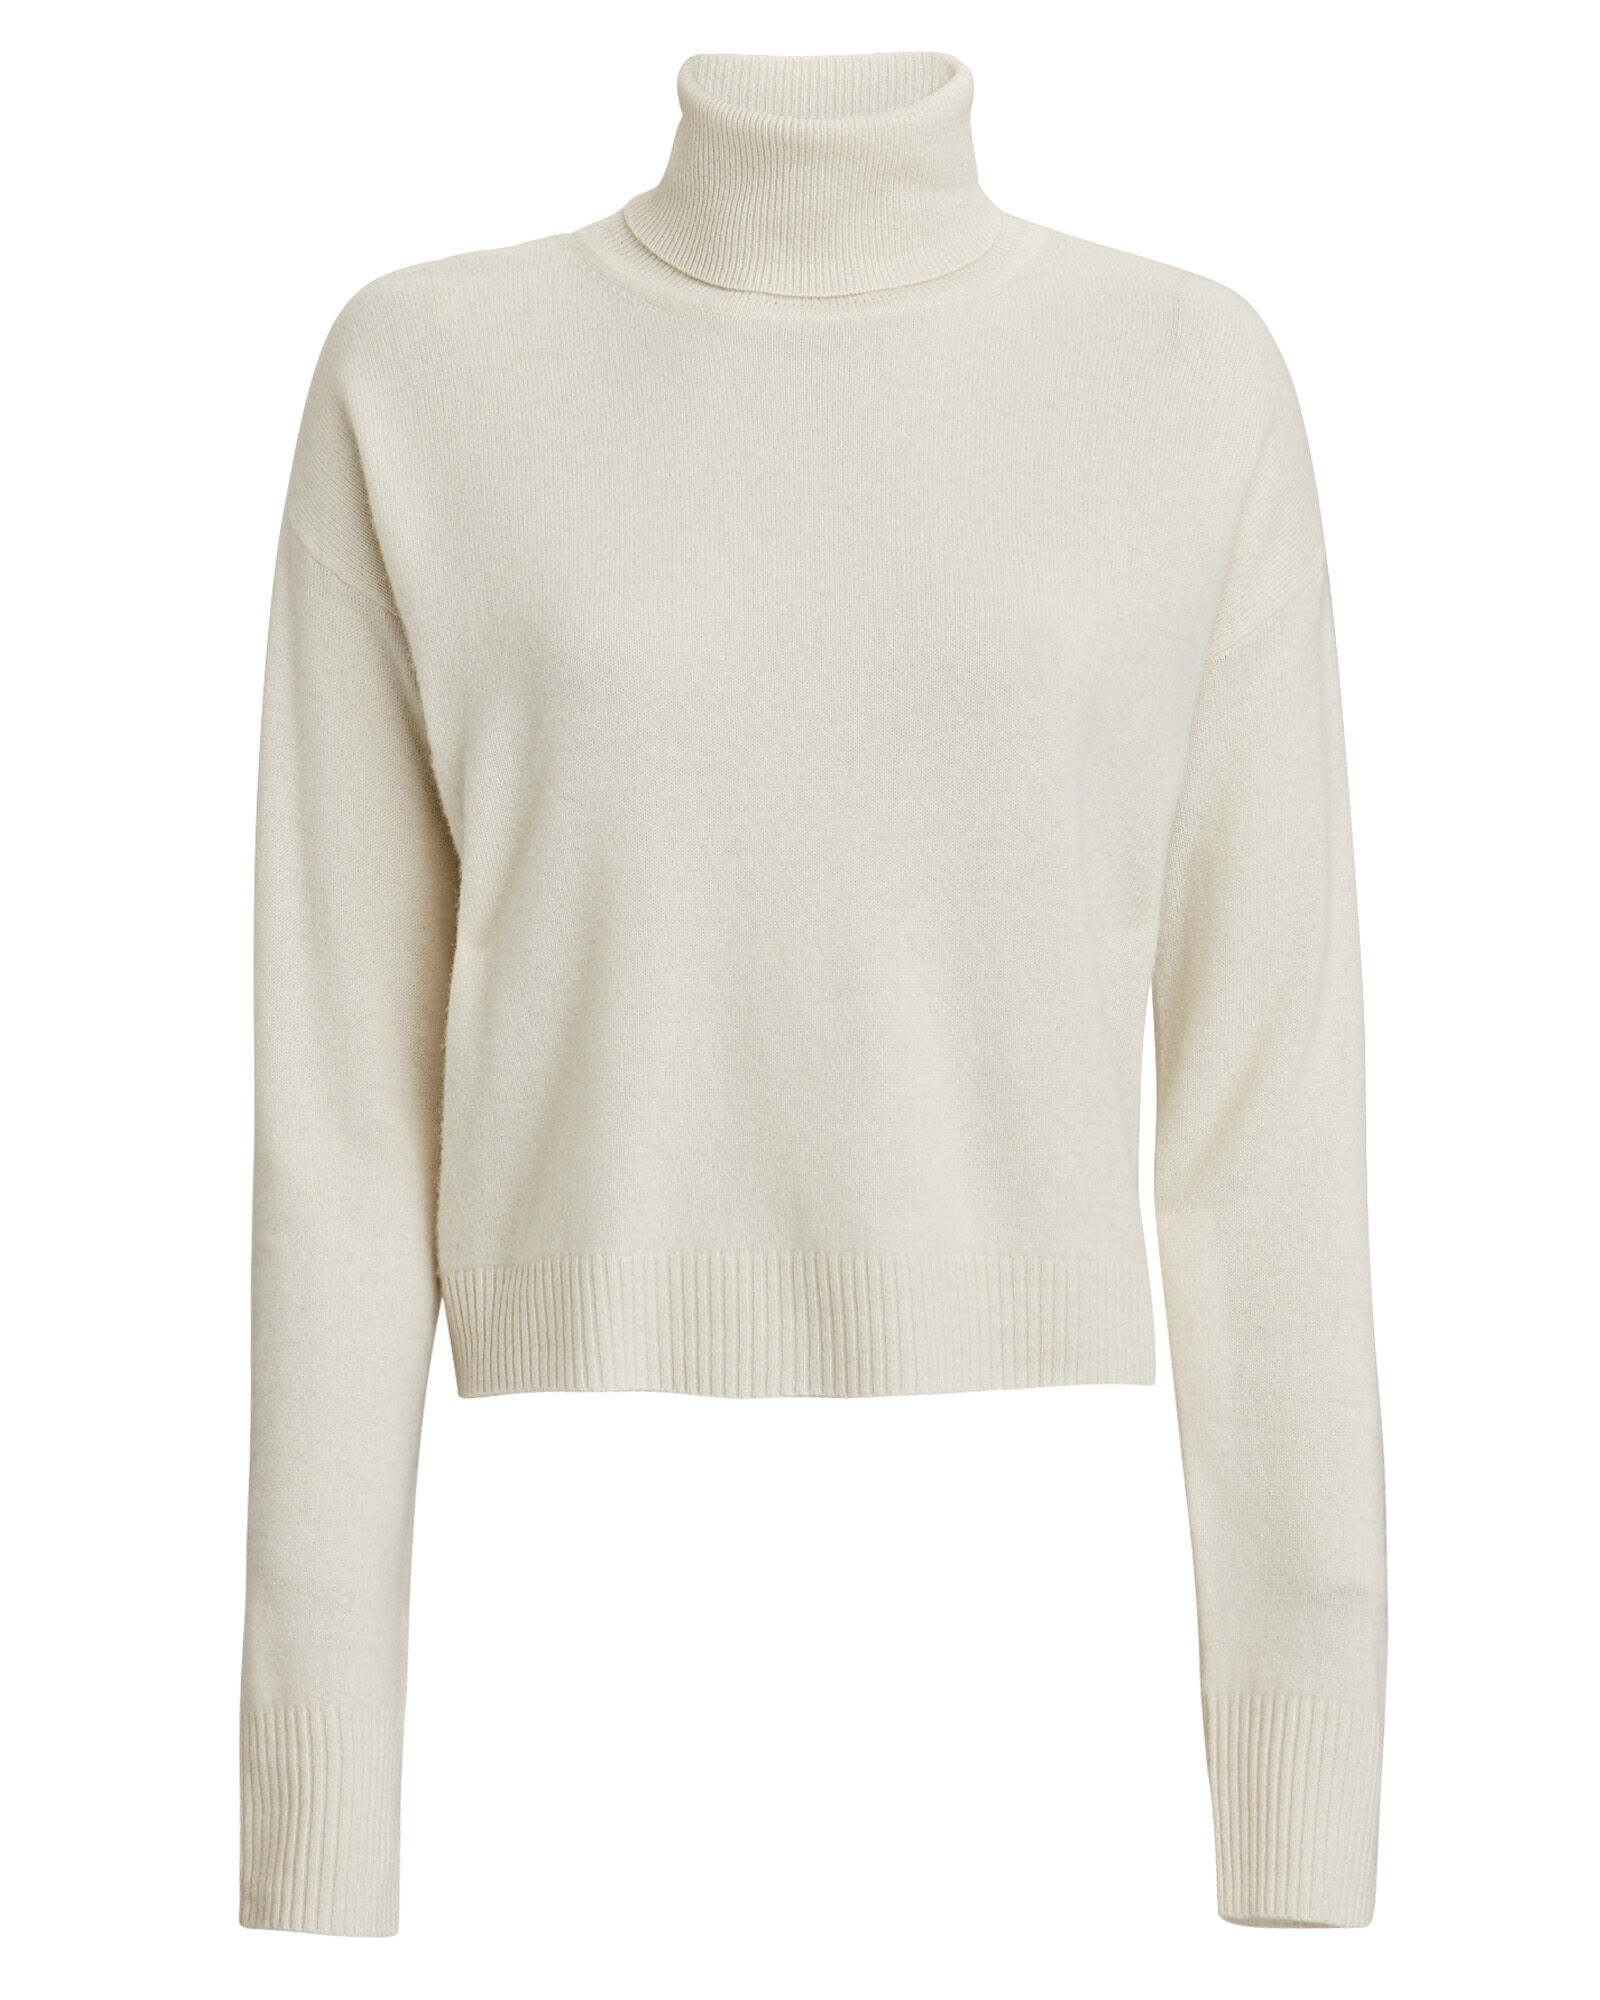 Bailey Cashmere Turtleneck Sweater, WHITE, hi-res